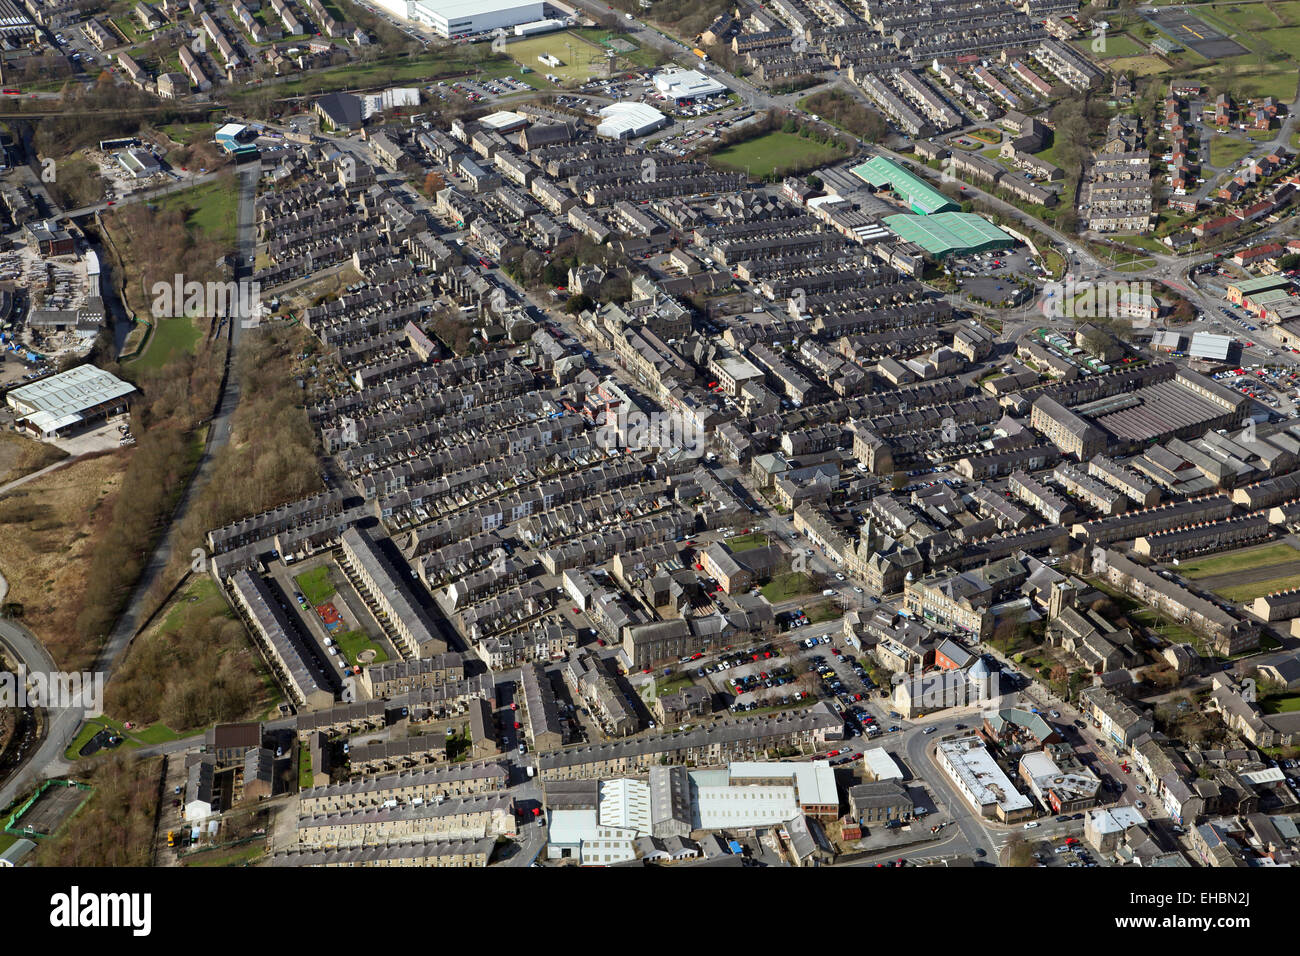 aerial view of the Lancashire town of Darwen - Stock Image